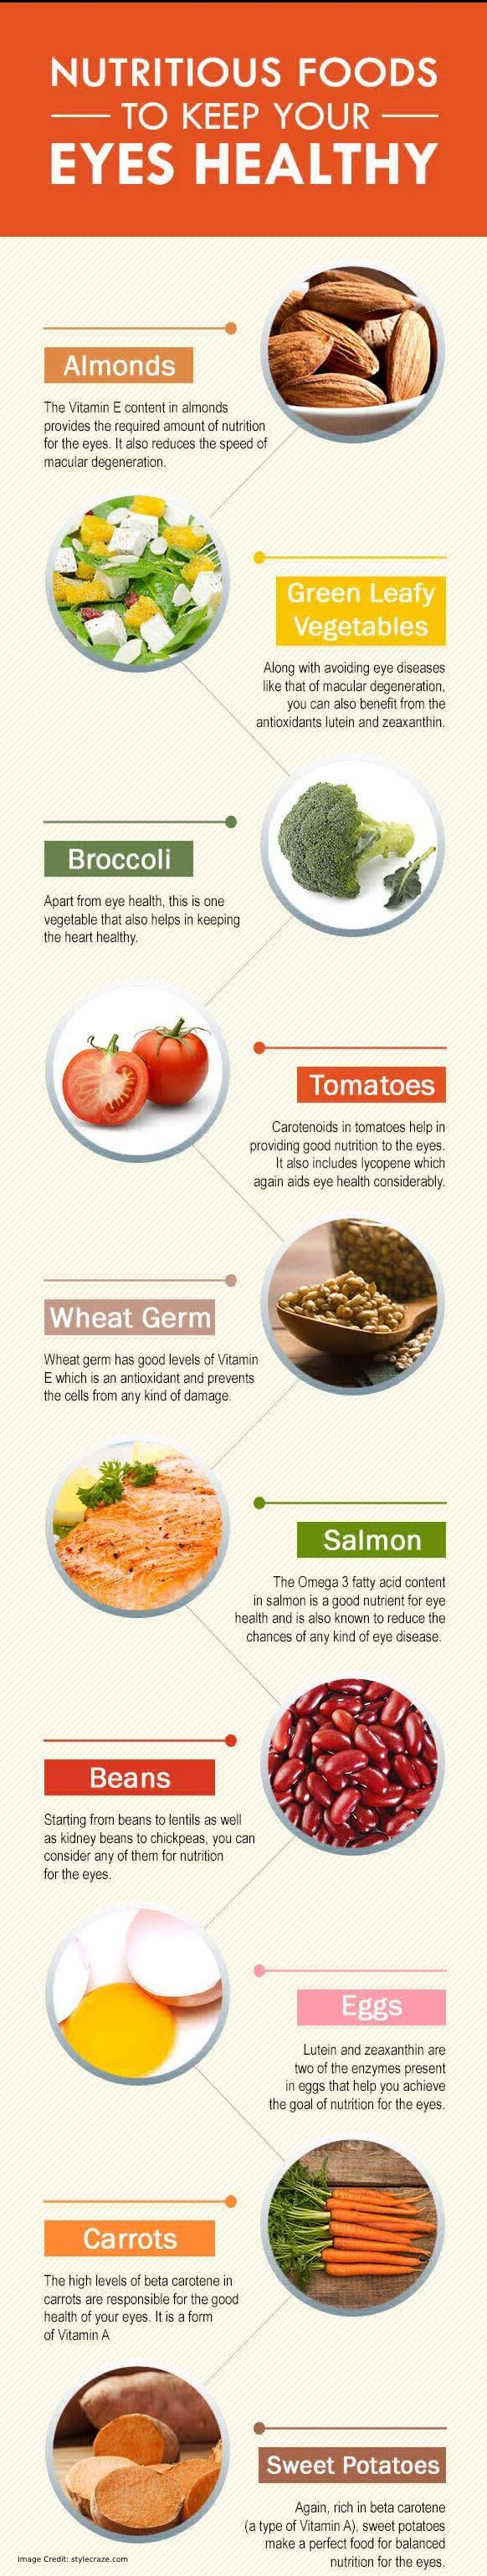 Healthy Eyes healthy Foods info